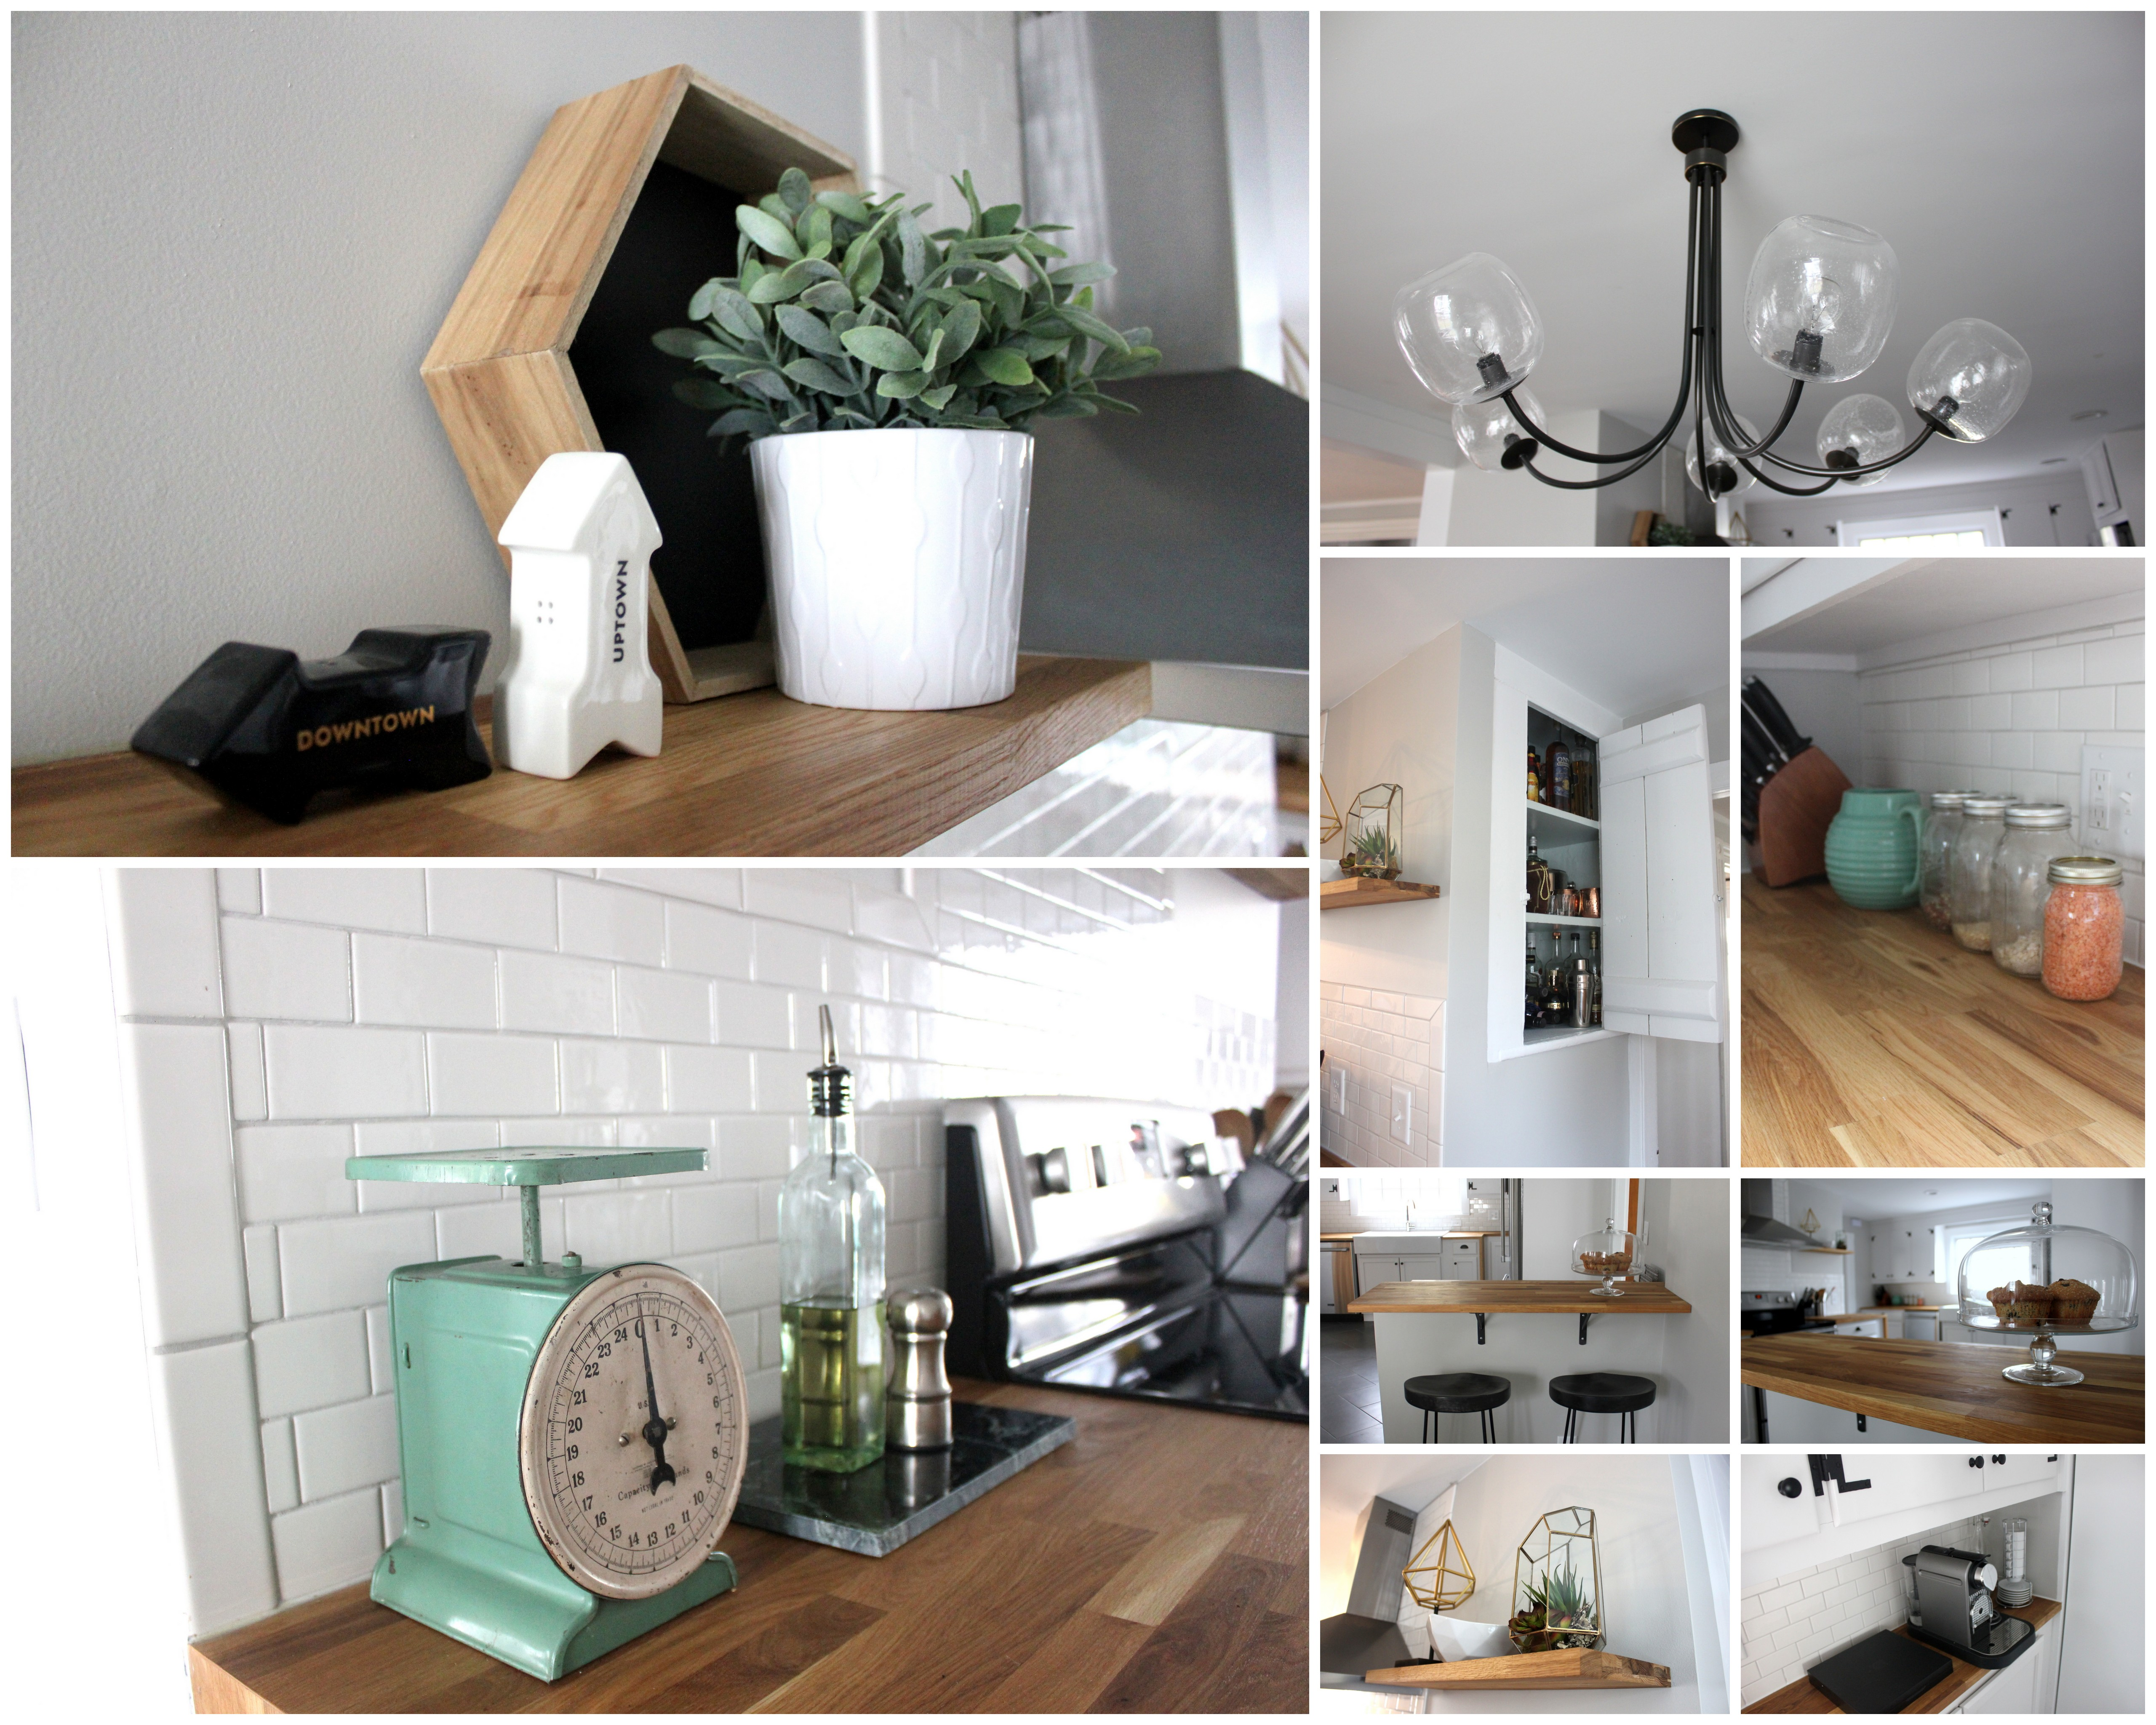 rahrighouse projects | open concept + dream kitchen | FreshlyMinted